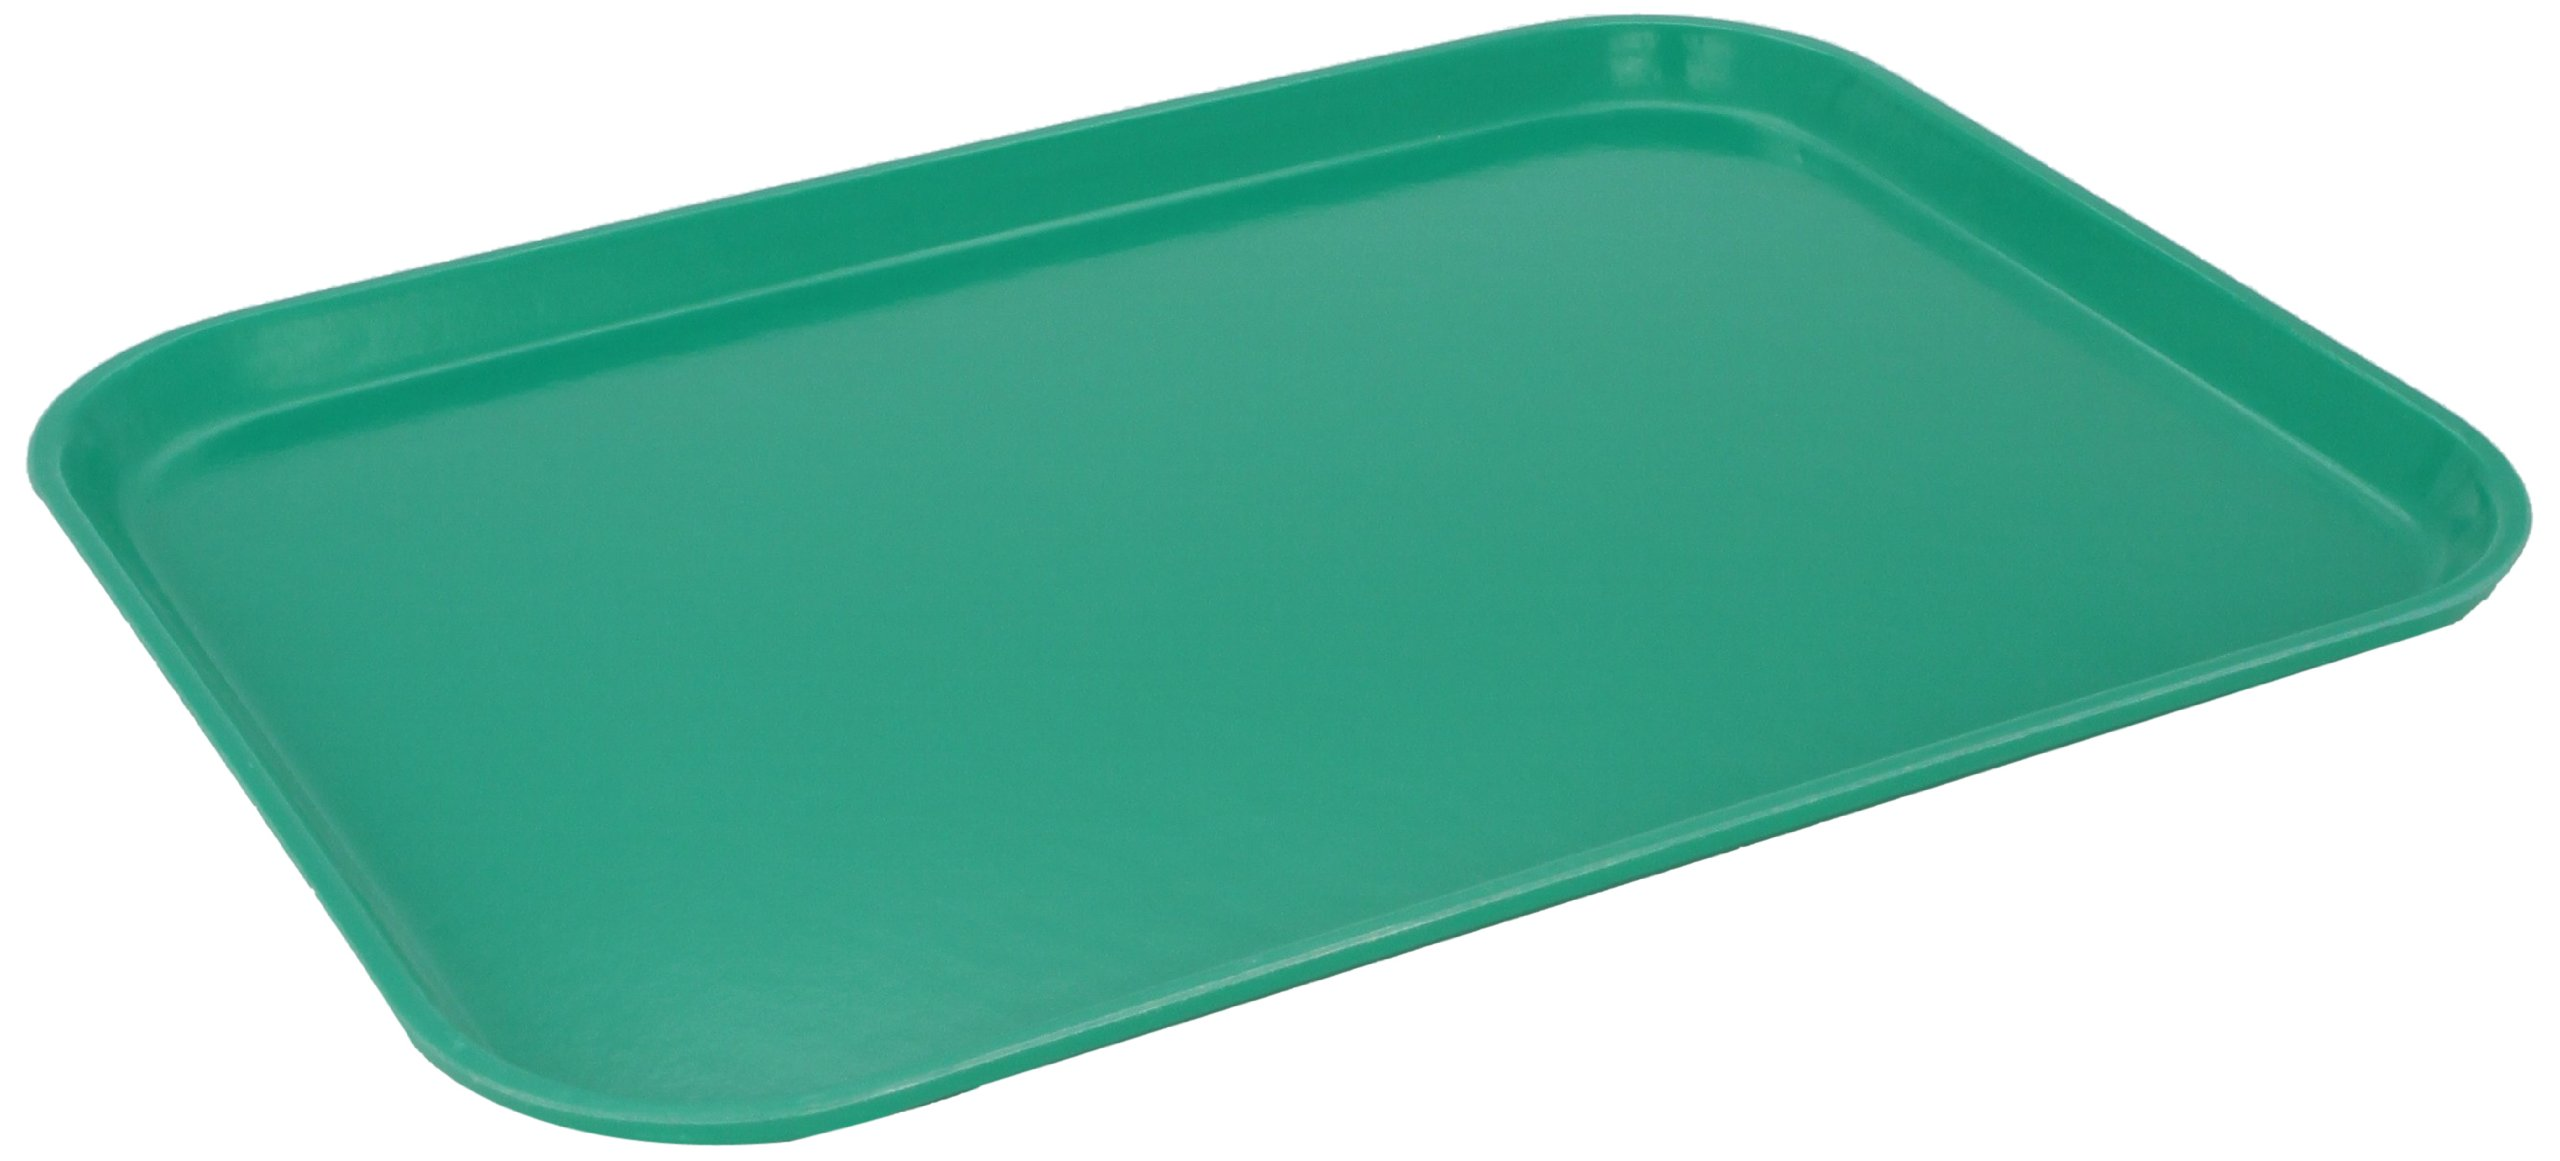 Carlisle 1612FG017 Fiberglass Glasteel Solid Rectangular Tray, 16.37'' x 12.00'', Red (Case of 12)